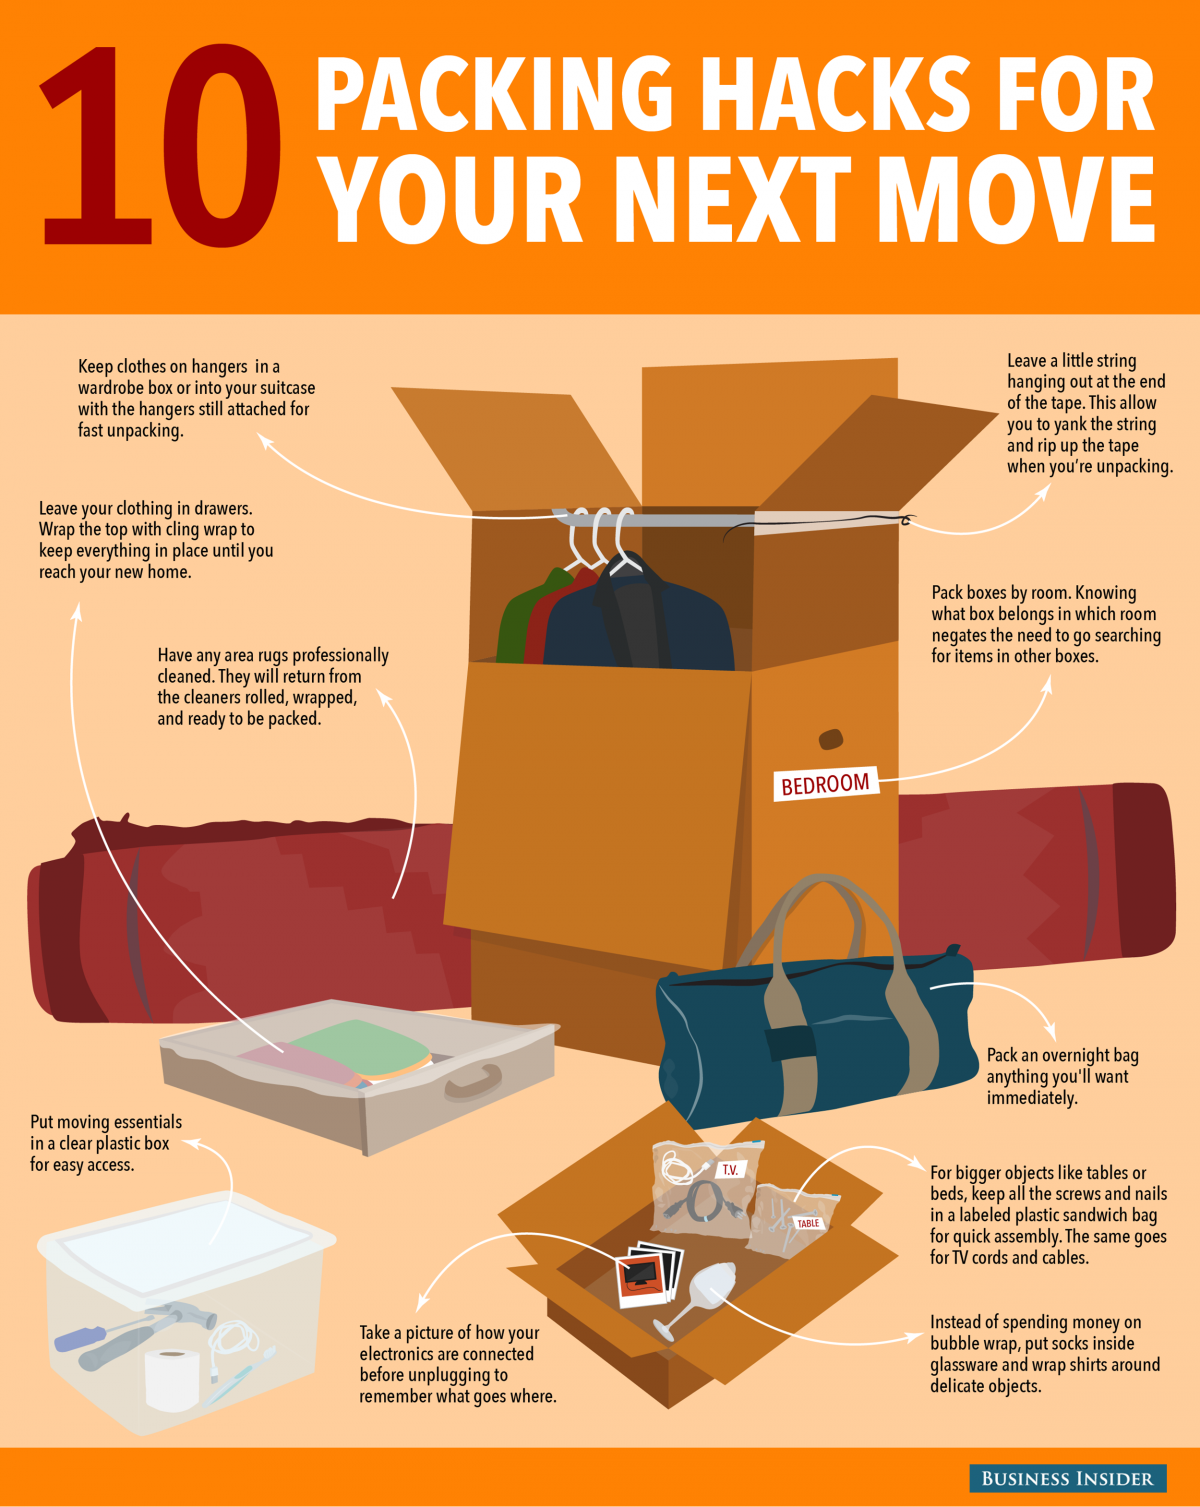 10 packing hacks for your next move make your move moving tips moving house tips moving house. Black Bedroom Furniture Sets. Home Design Ideas